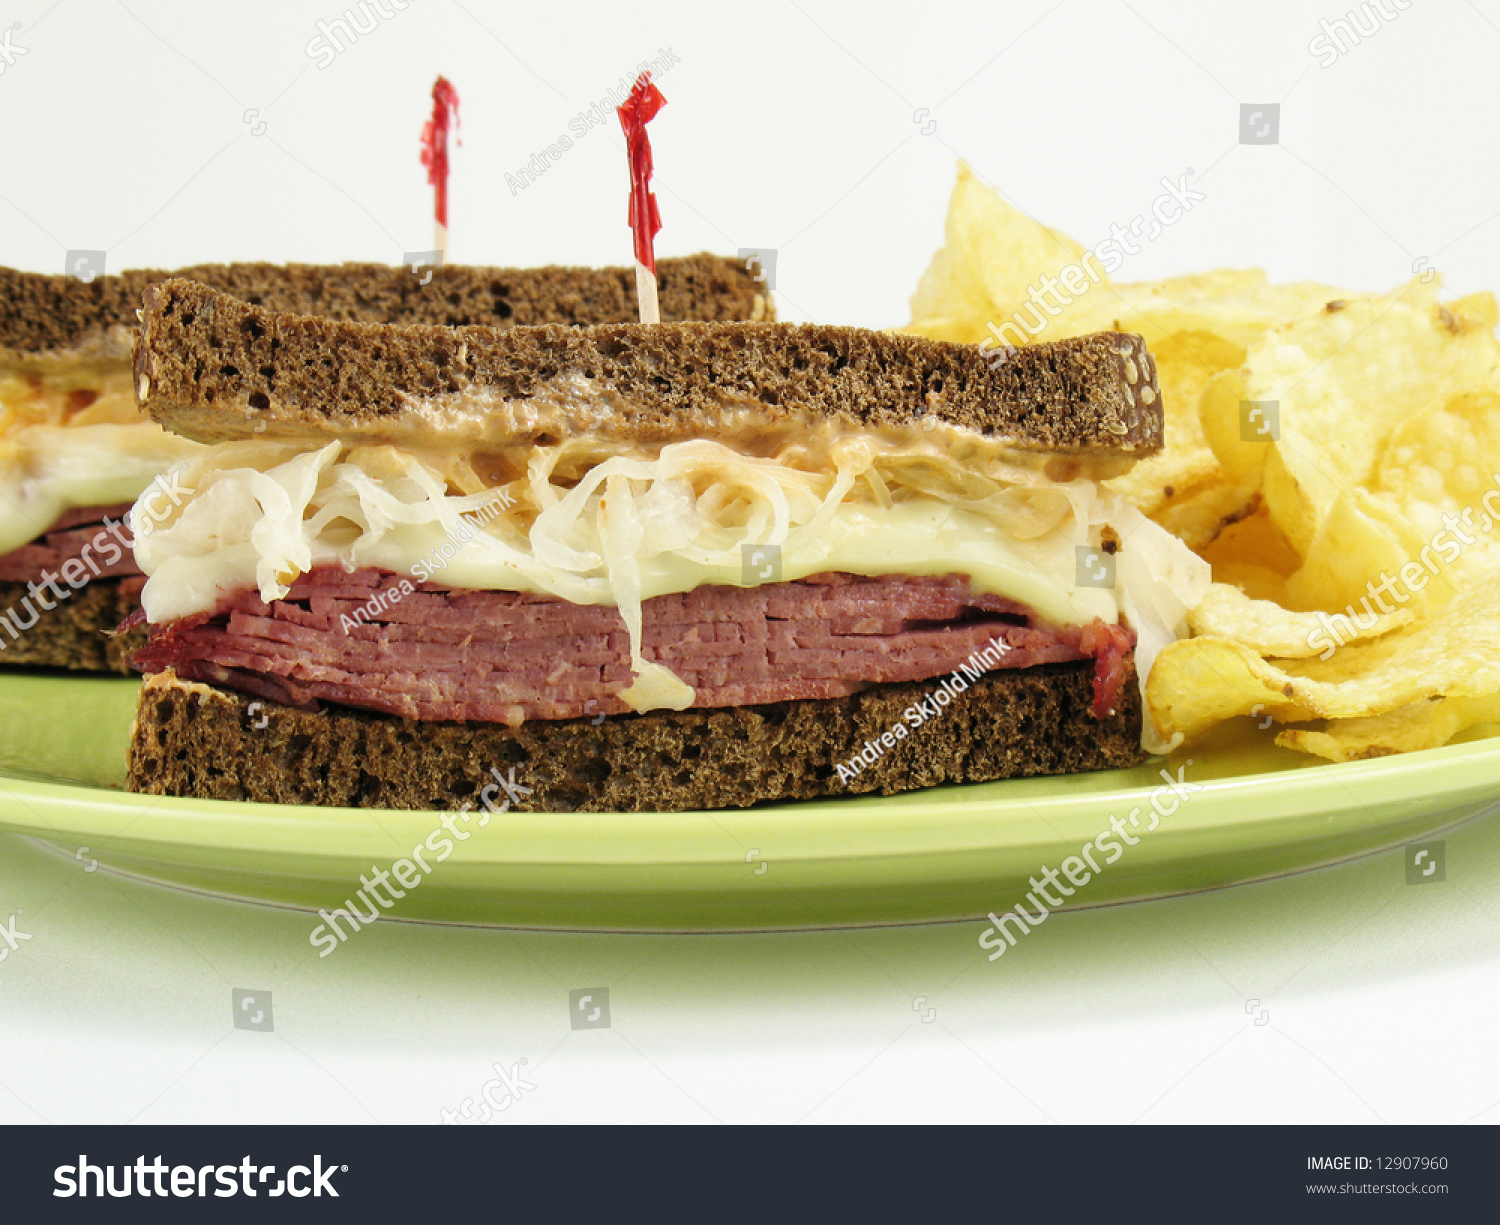 Reuben Sandwiches On Pumpernickel Rye Bread With Potato Chips Stock ...